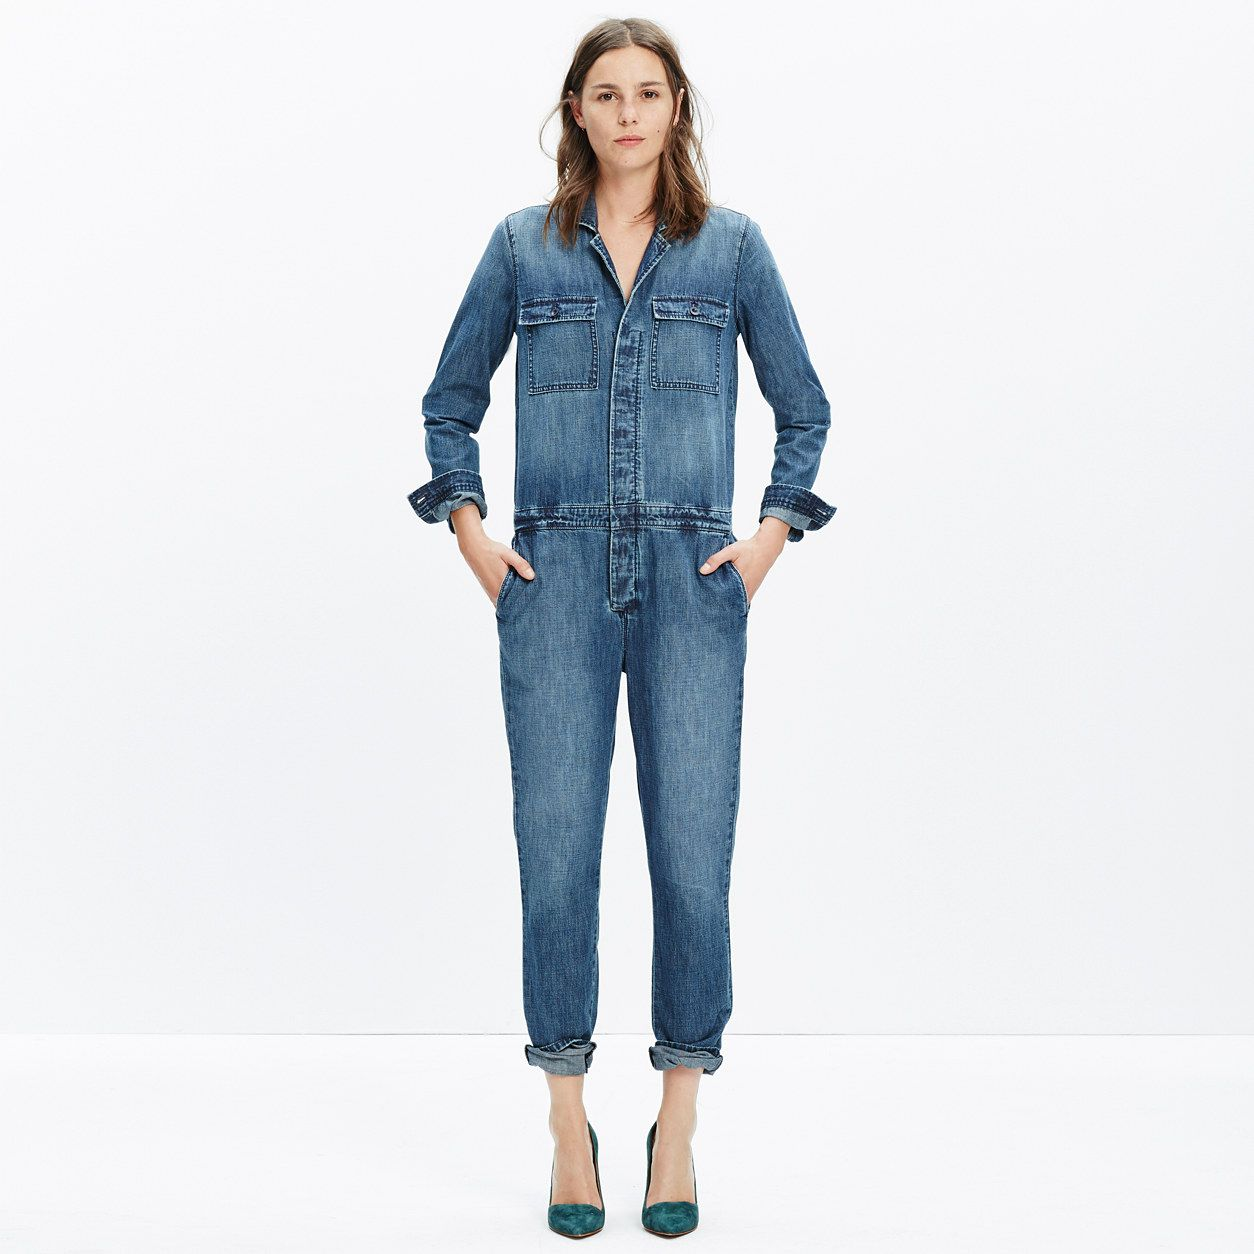 81ff343c242 Denim Surveyor Jumpsuit   OVERALLS   JUMPSUITS